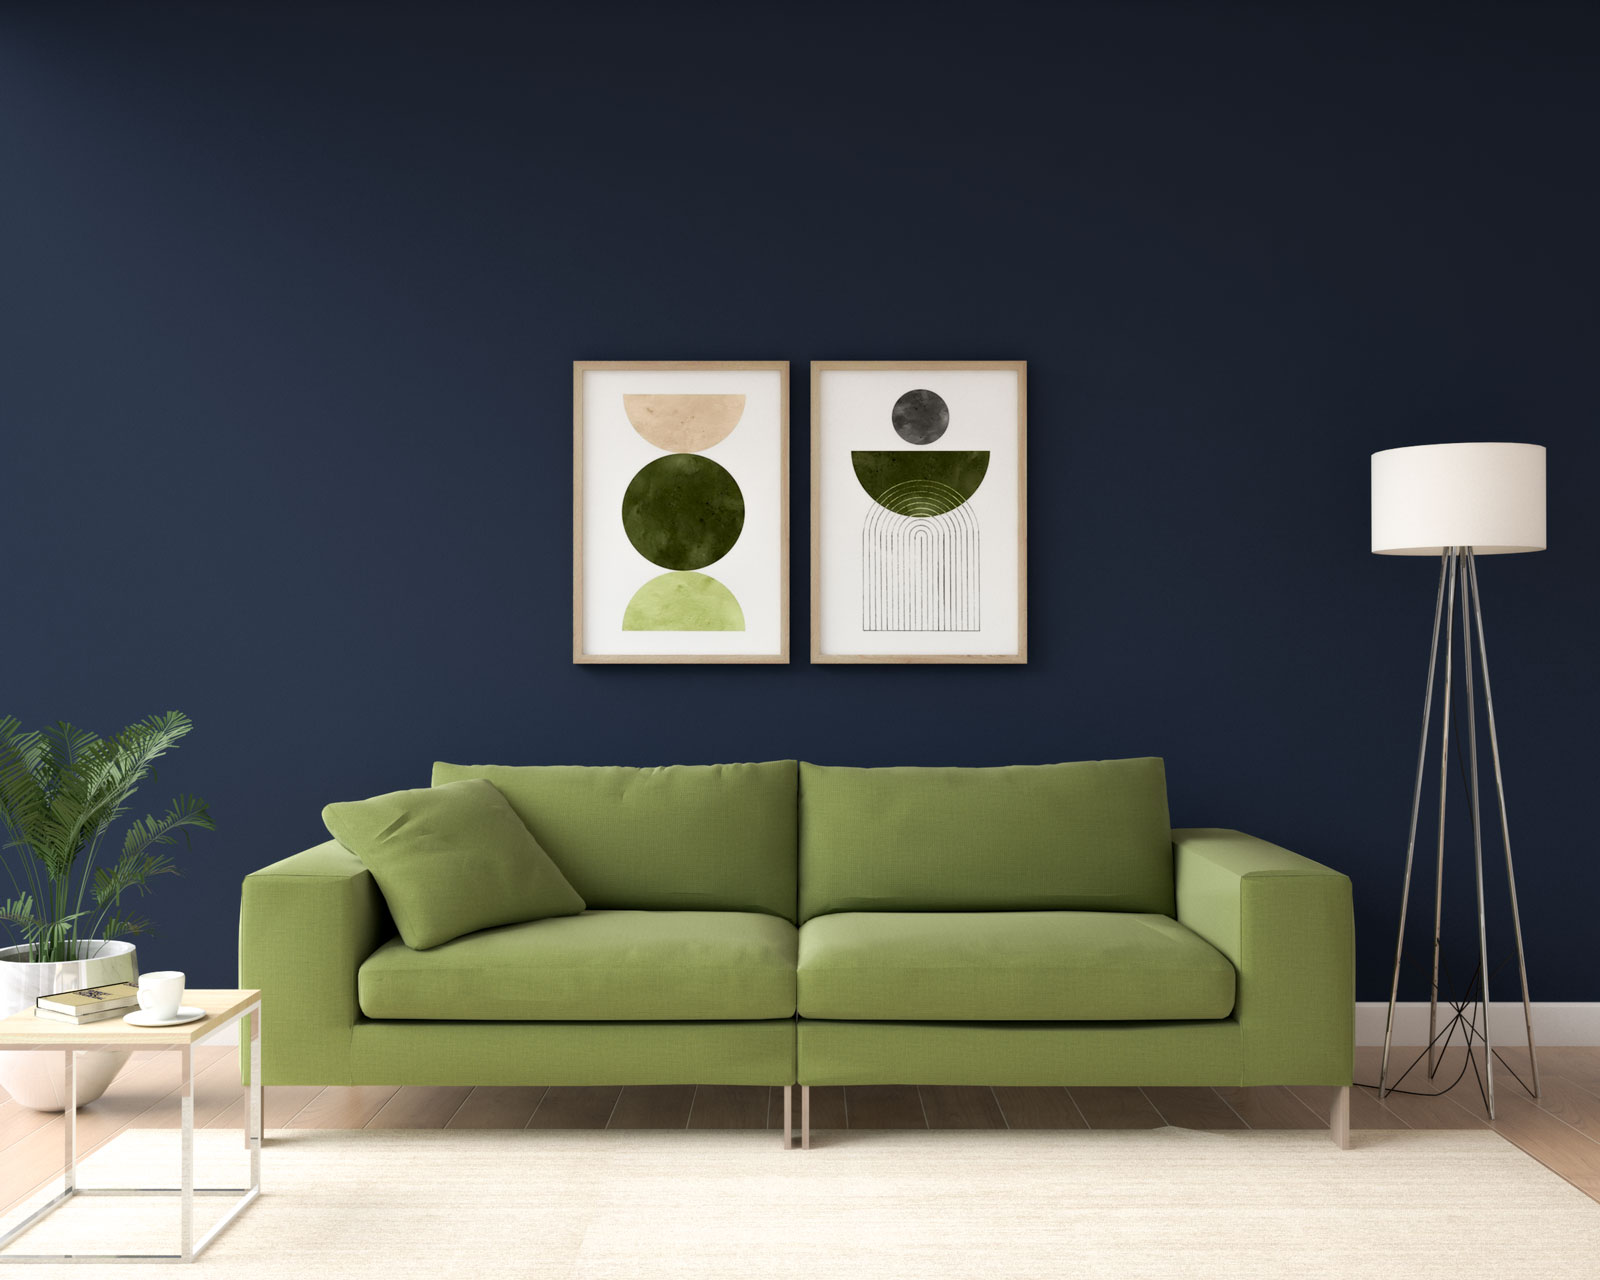 French navy and olive living room ideas